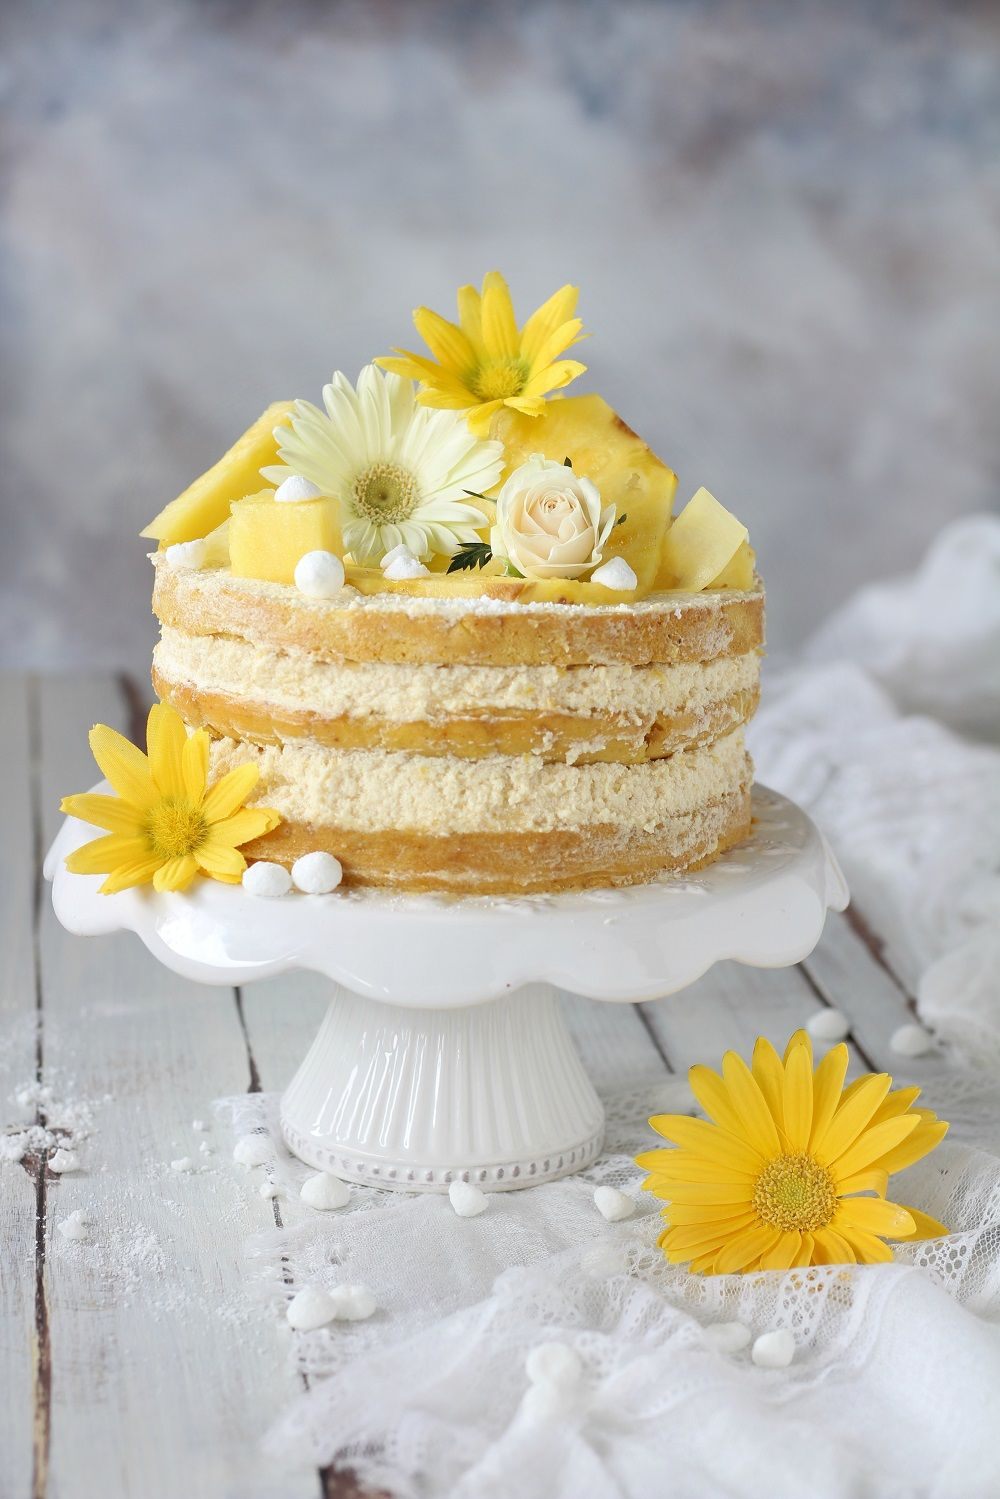 Naked Cake Con Ananas Facile E Veloce In 2018 The Freshest Pins